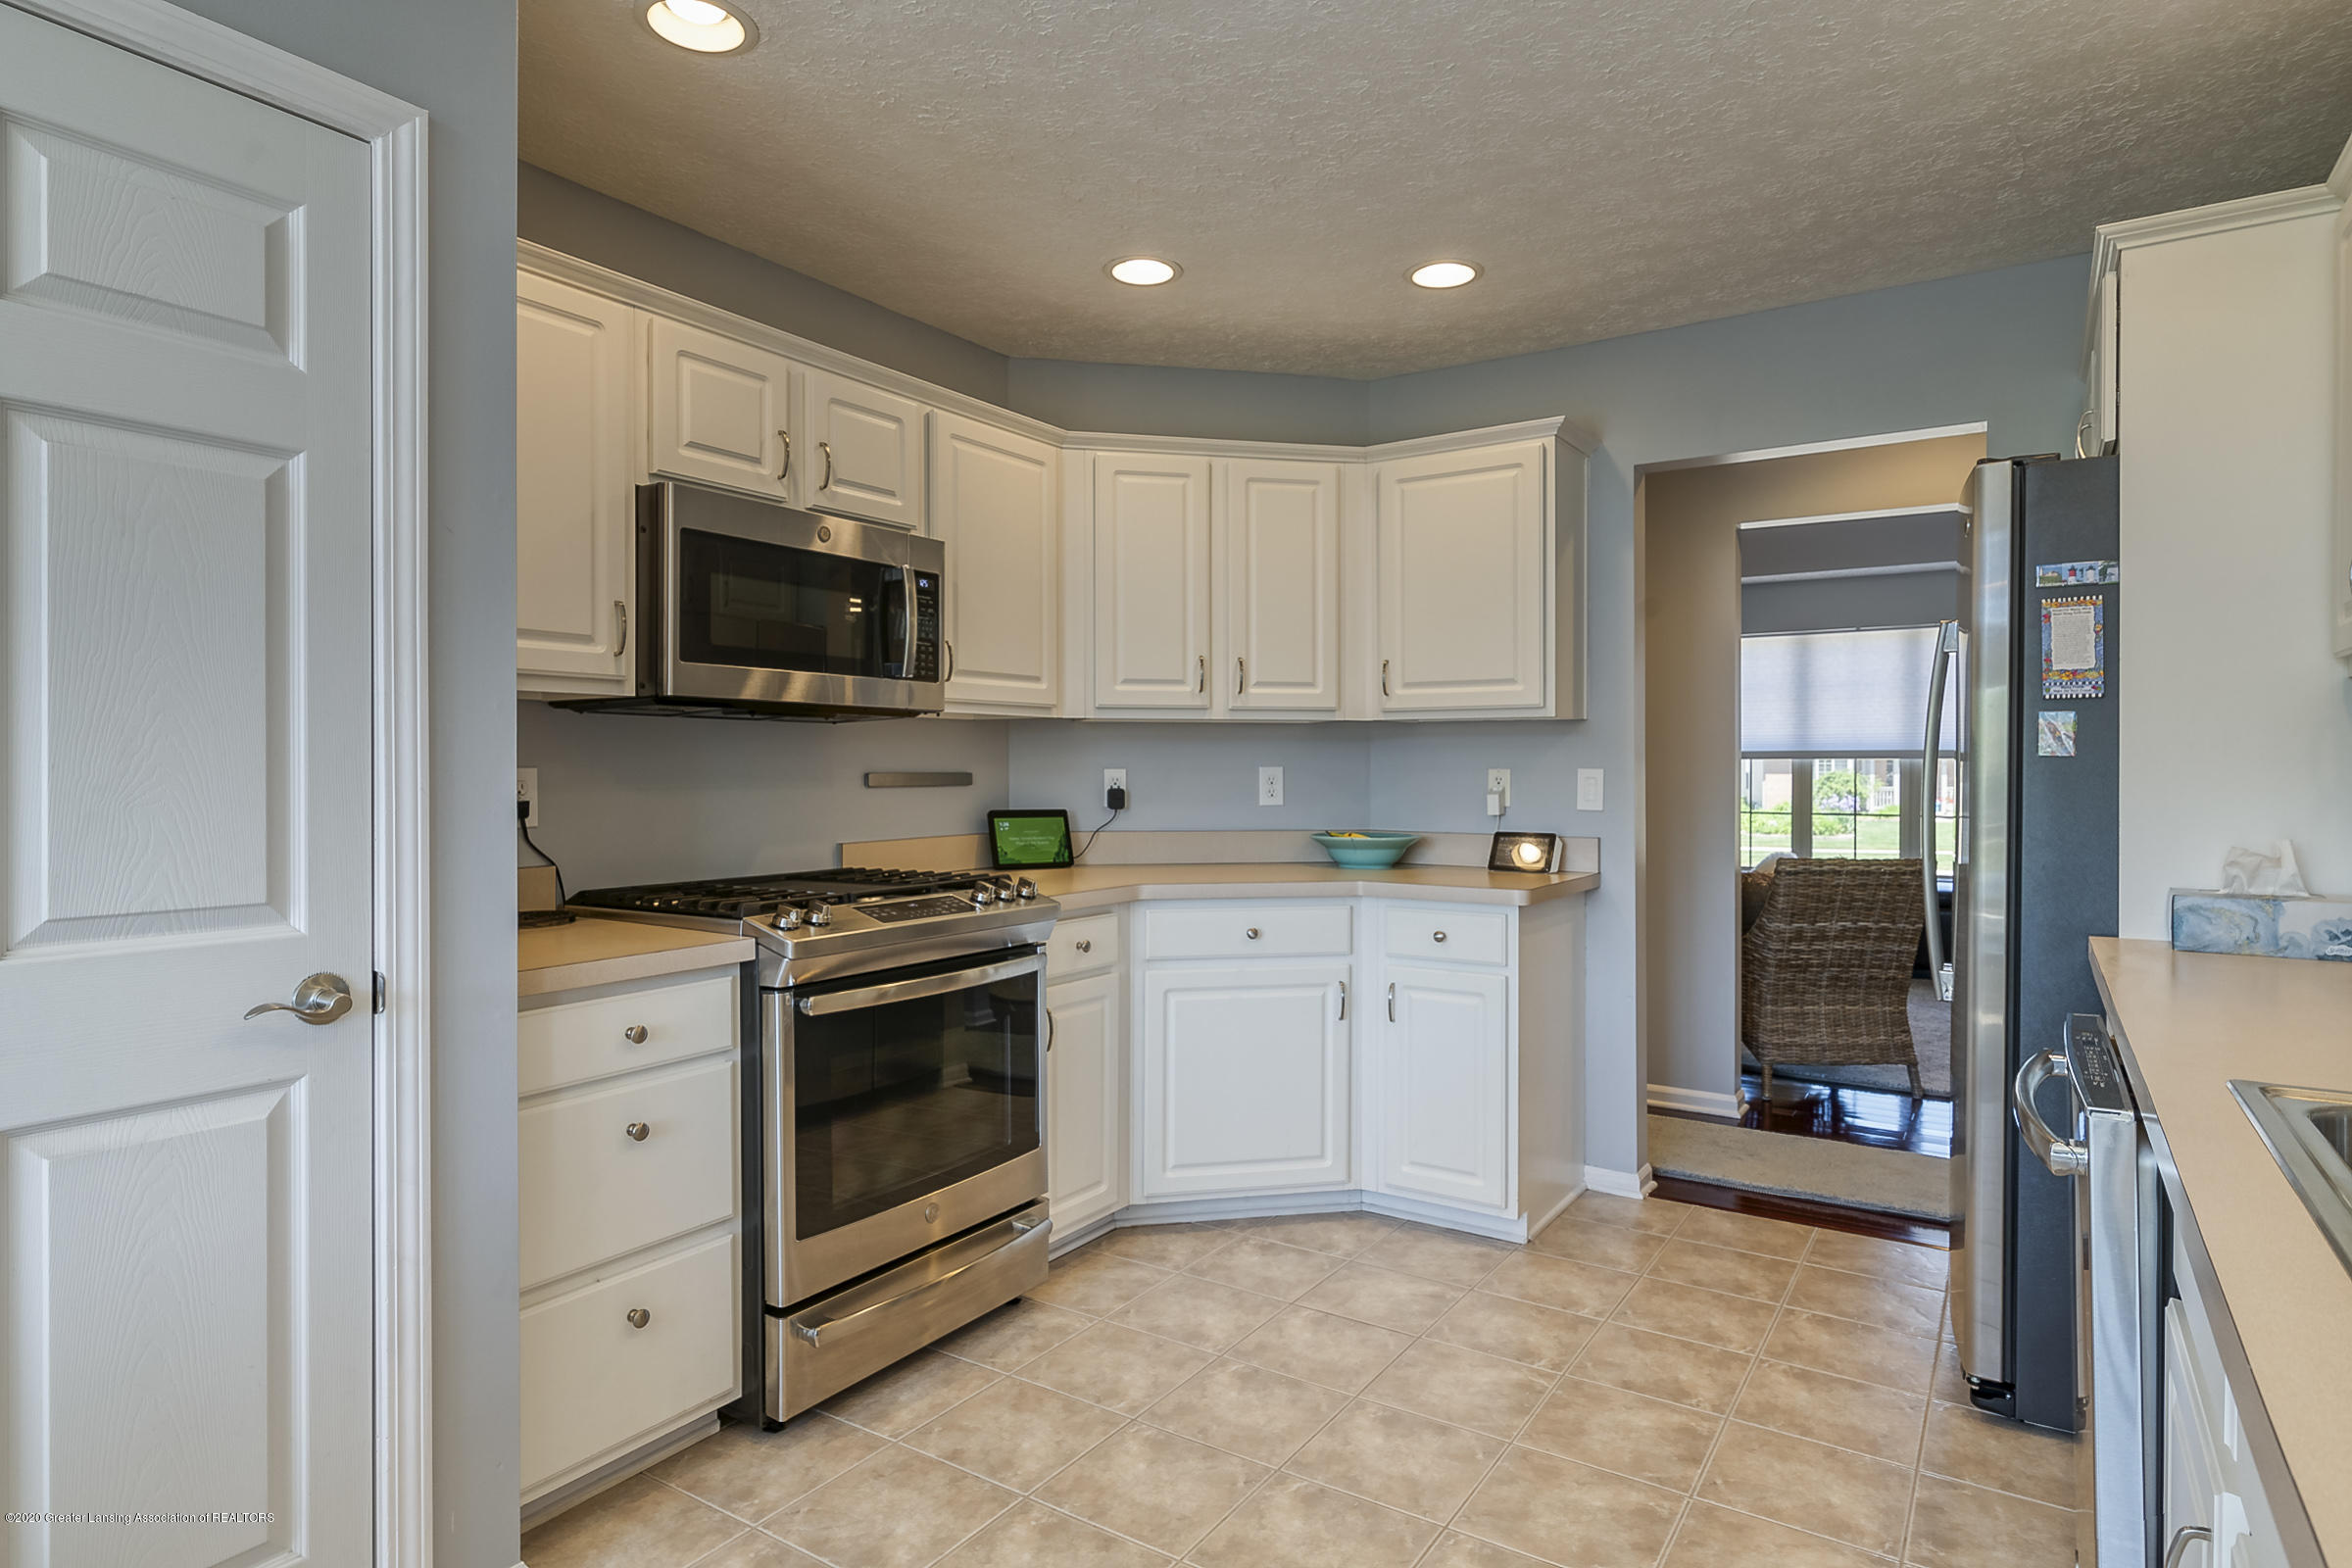 4092 Pheasant Run - KITCHEN - 15